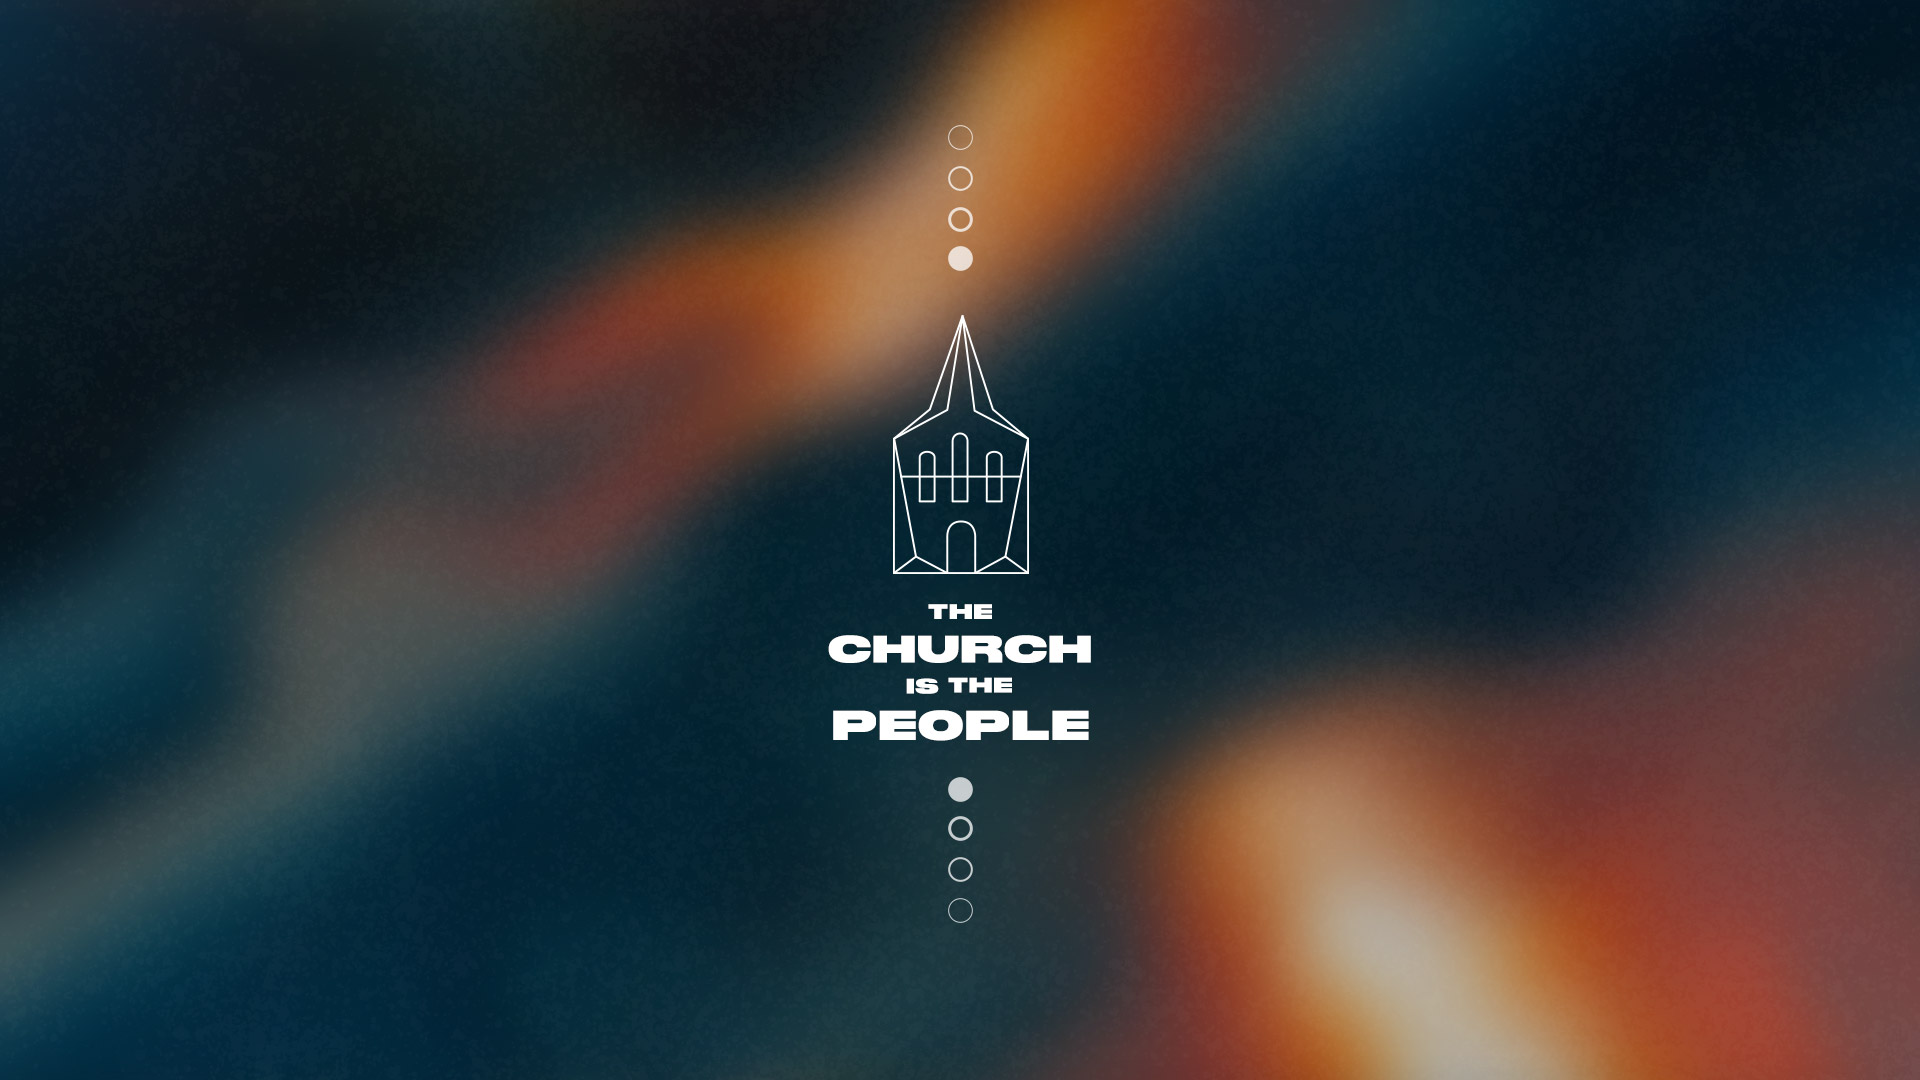 The Church is the People - Sunday 25th October 2020 - Jamie Harland